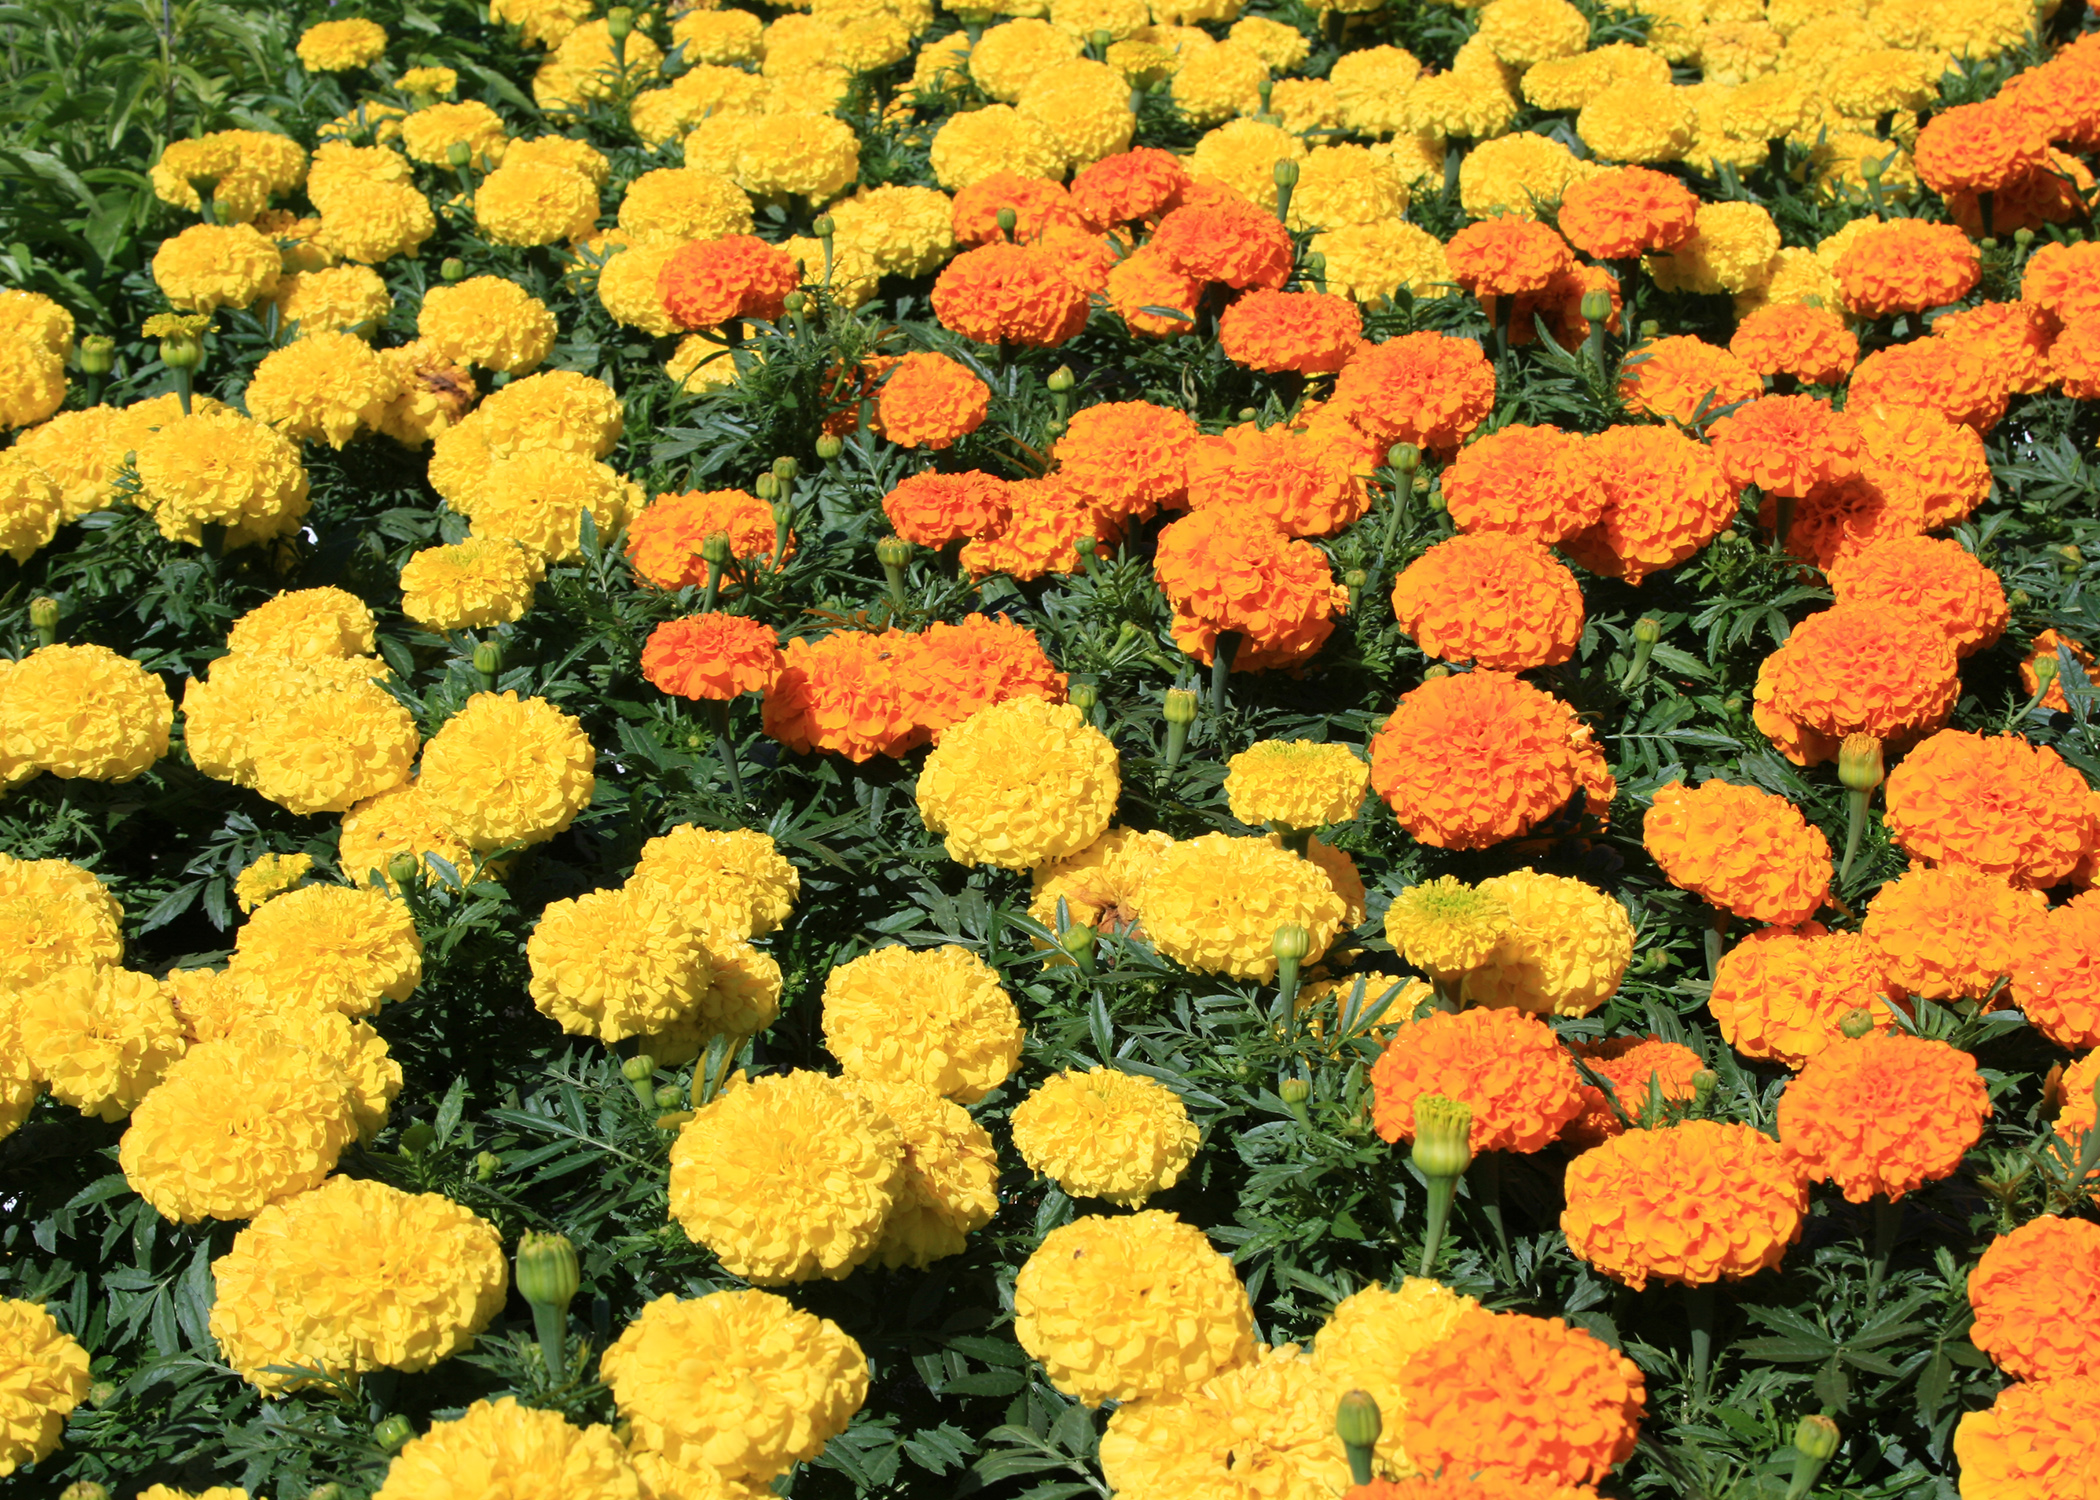 Fall Is An Ideal Time To Plant Marigolds Varieties Such As These Antiqua Orange And